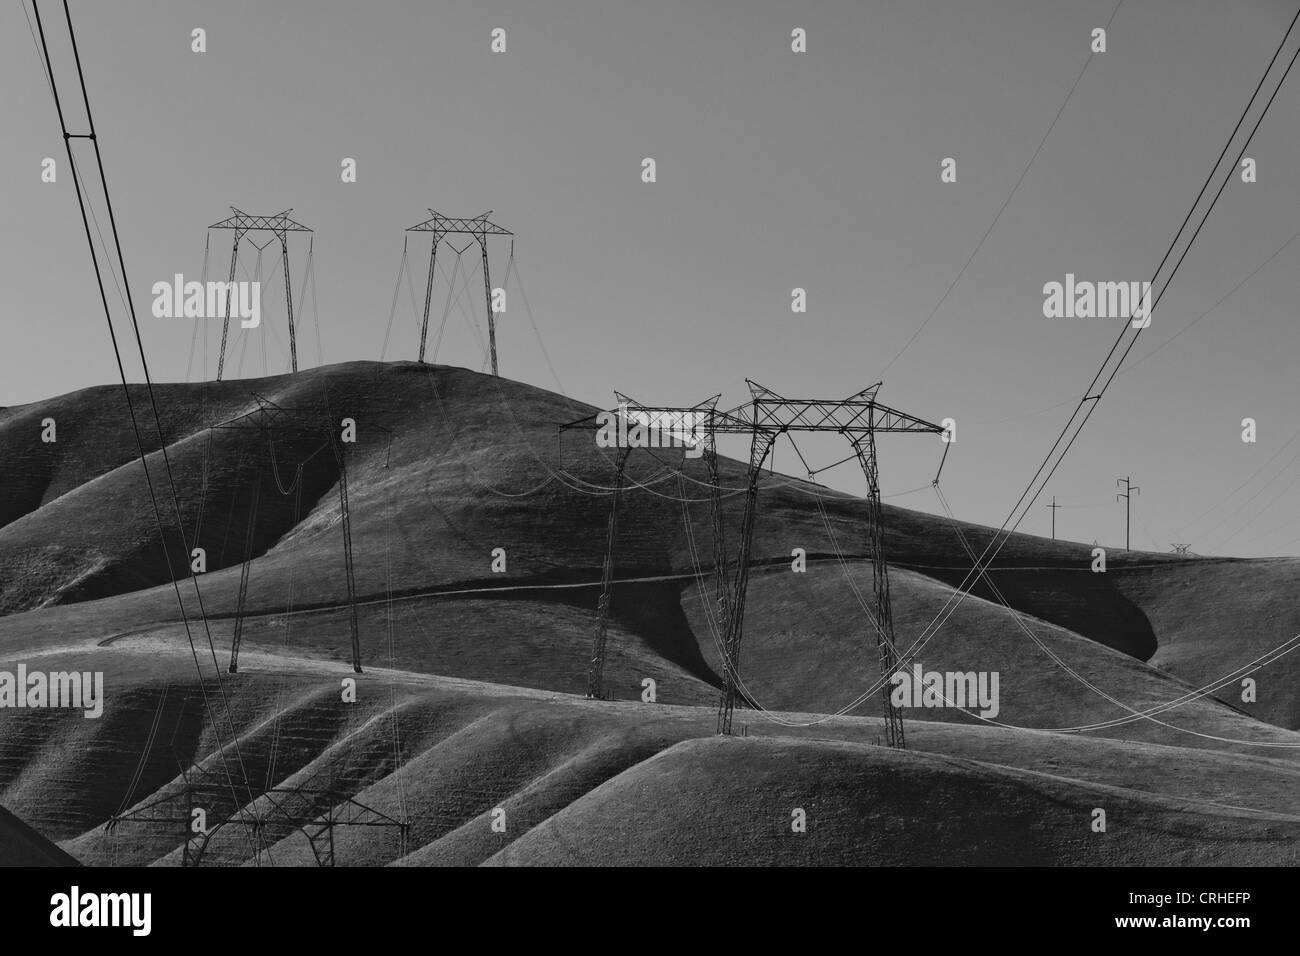 Pylons and power lines over barren hills - California, USA - Stock Image